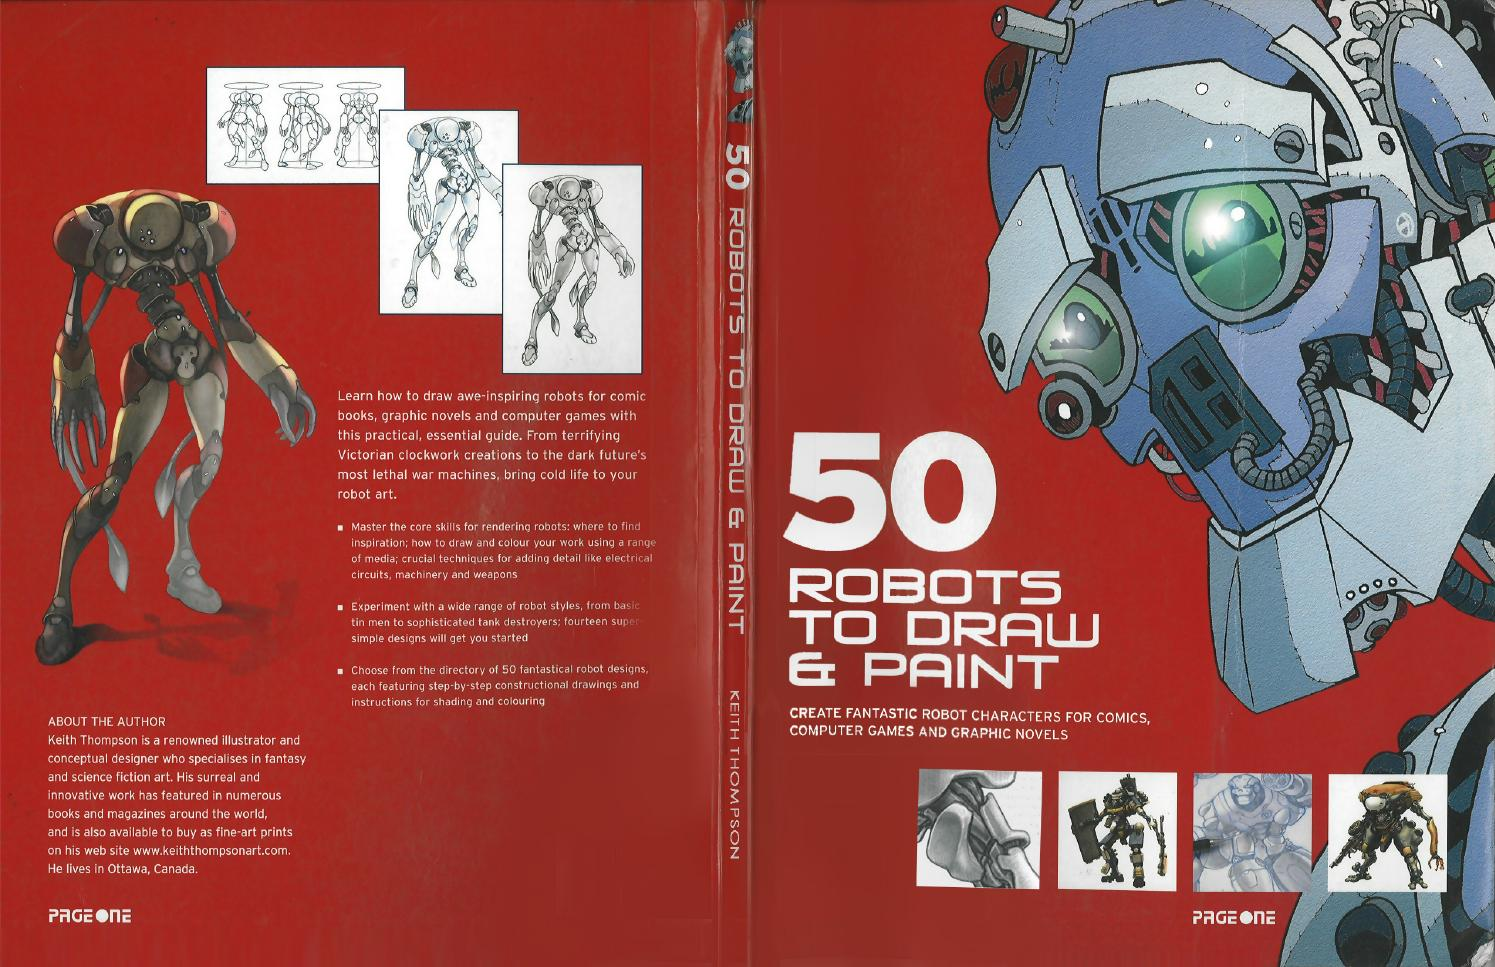 50 robots to draw and paint create fantastic robot characters for ...